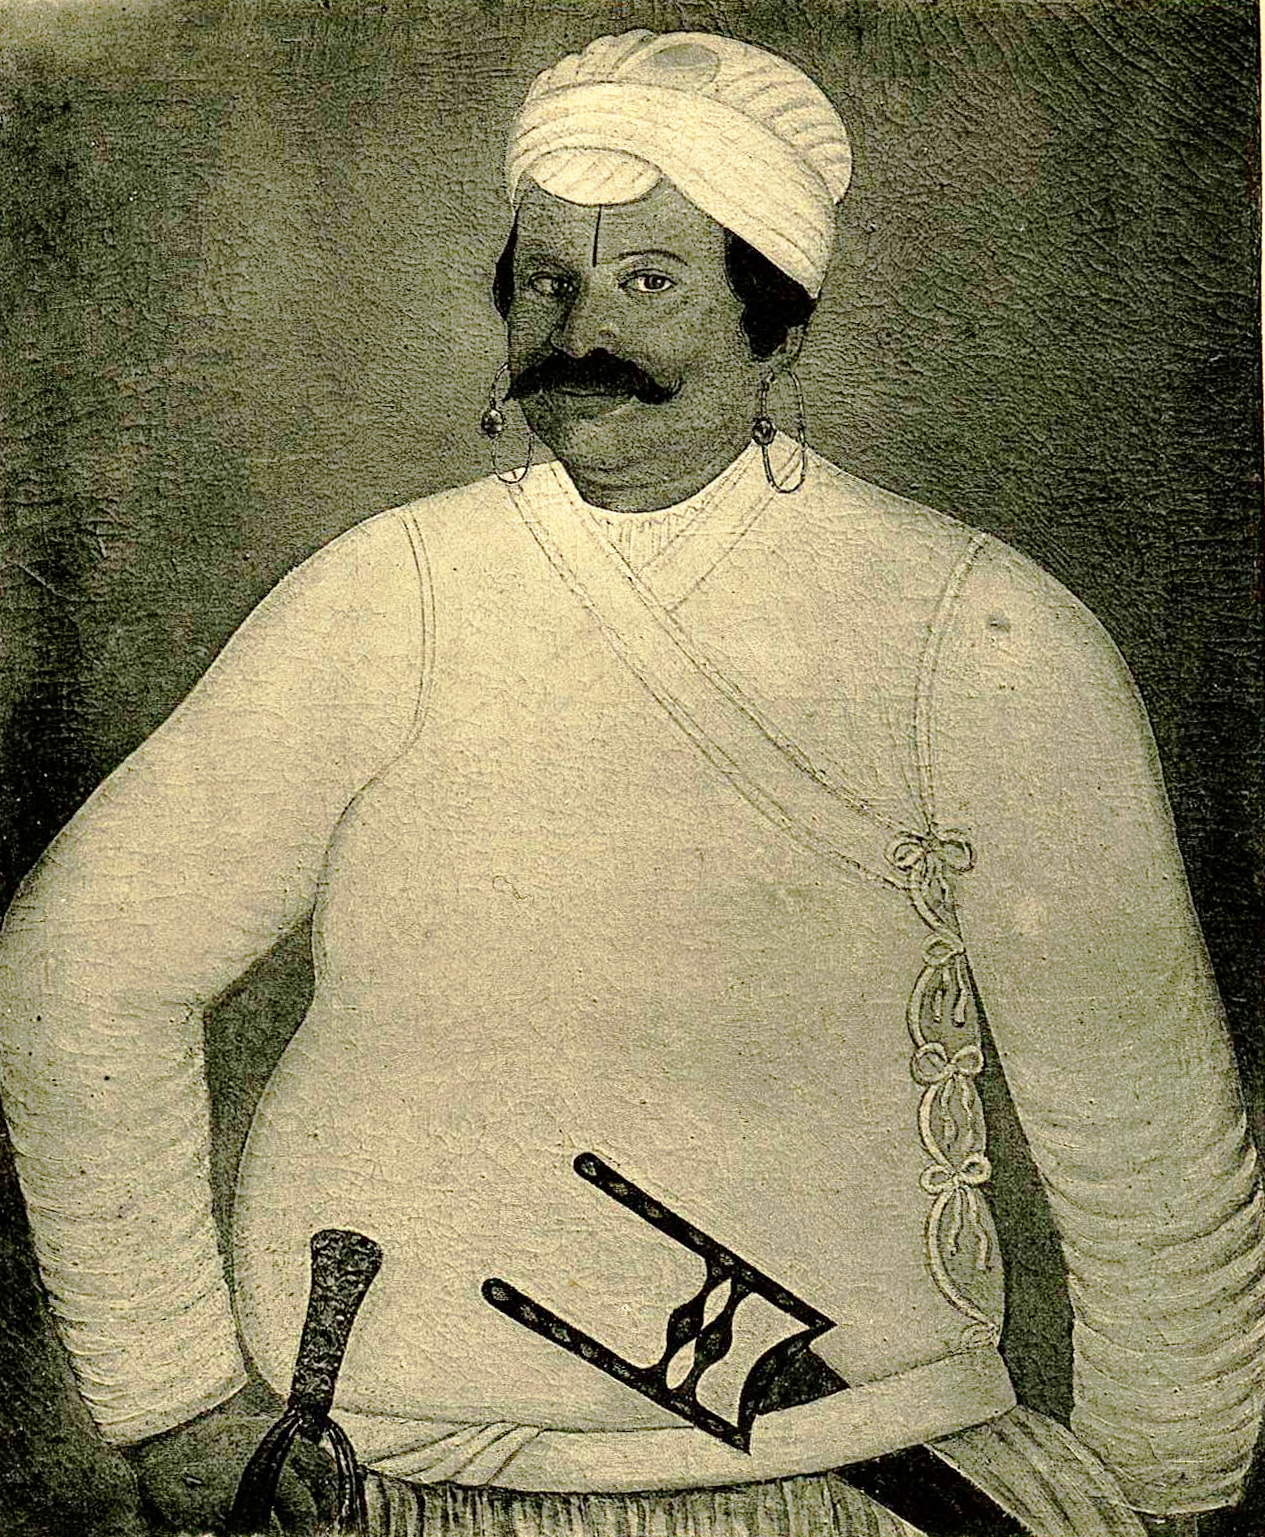 Man in Indian clothes with dagger